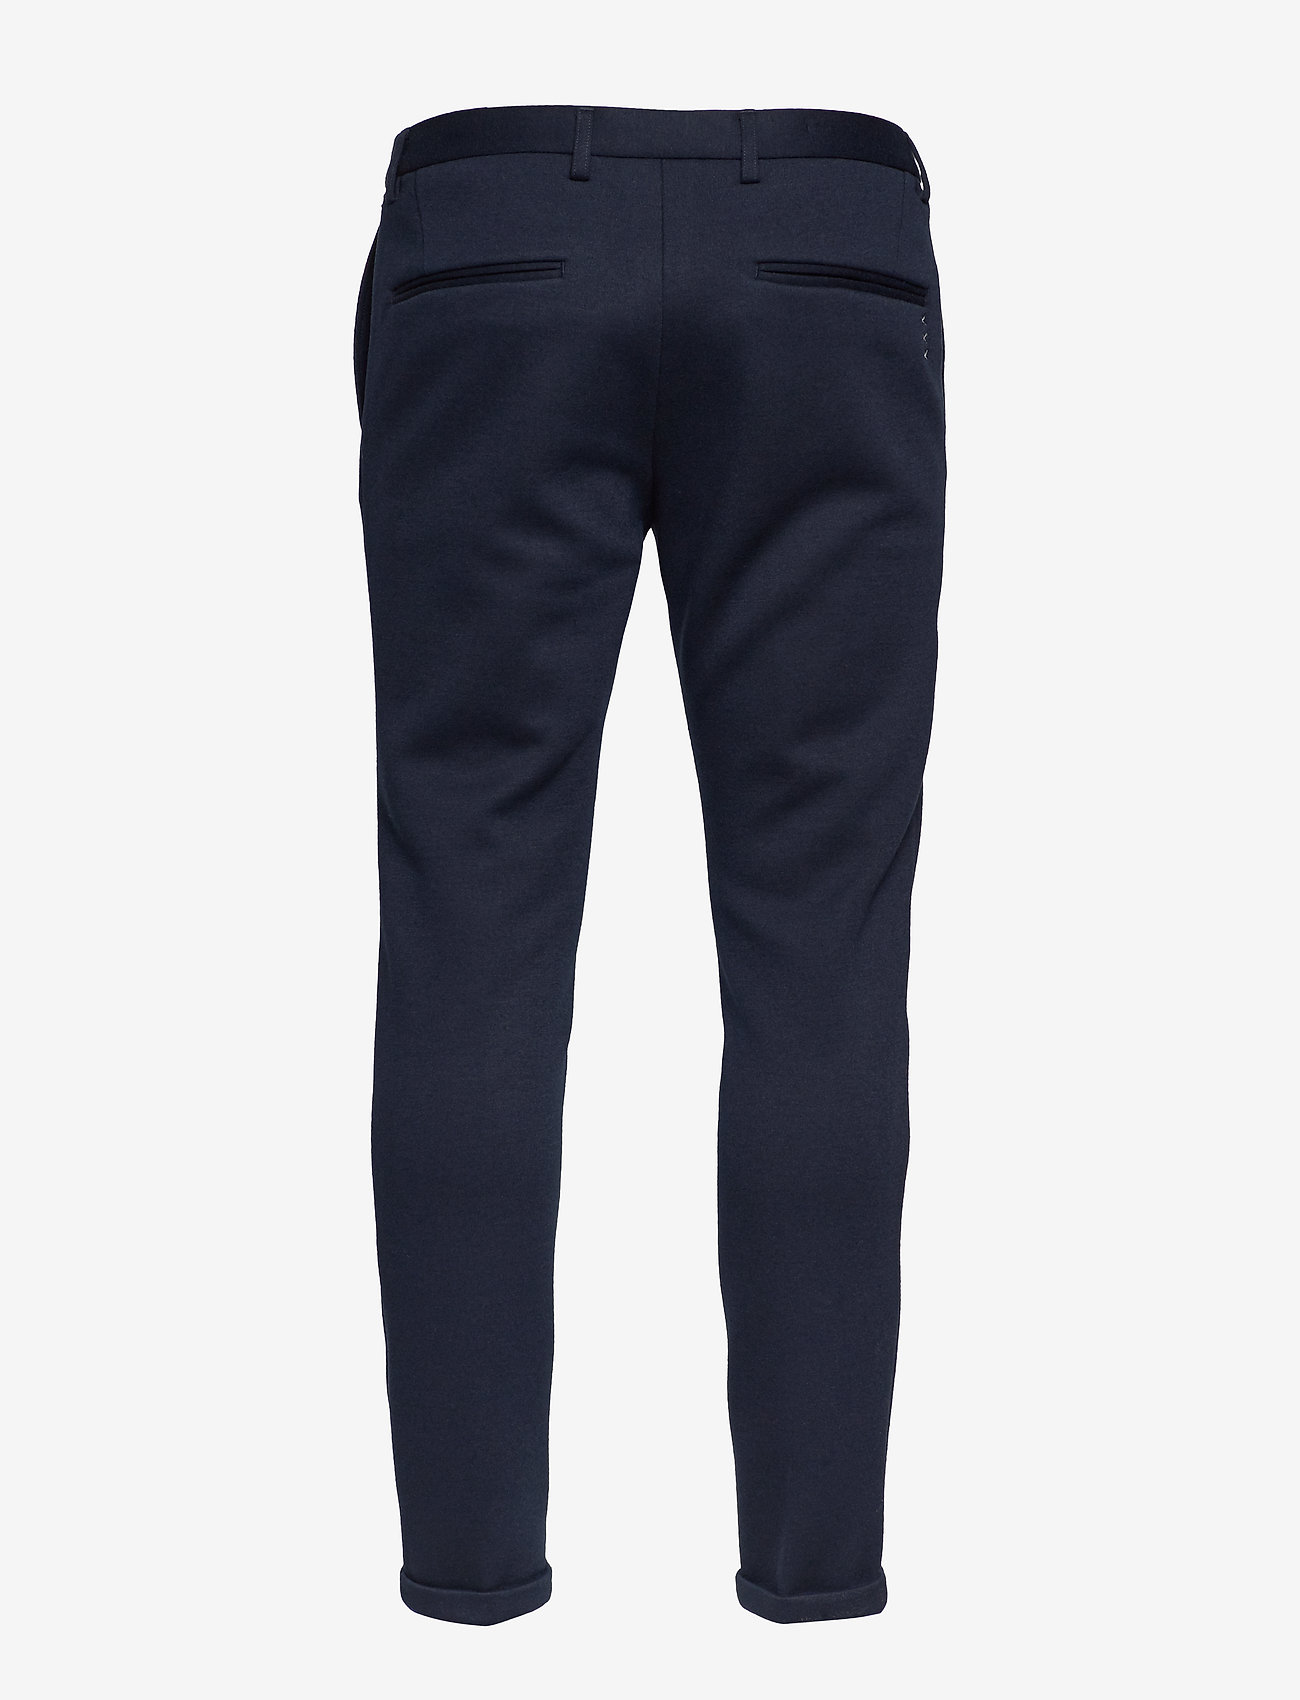 Scotch & Soda - Ams Blauw chic sweat pant with pintuck - suitbukser - navy - 1